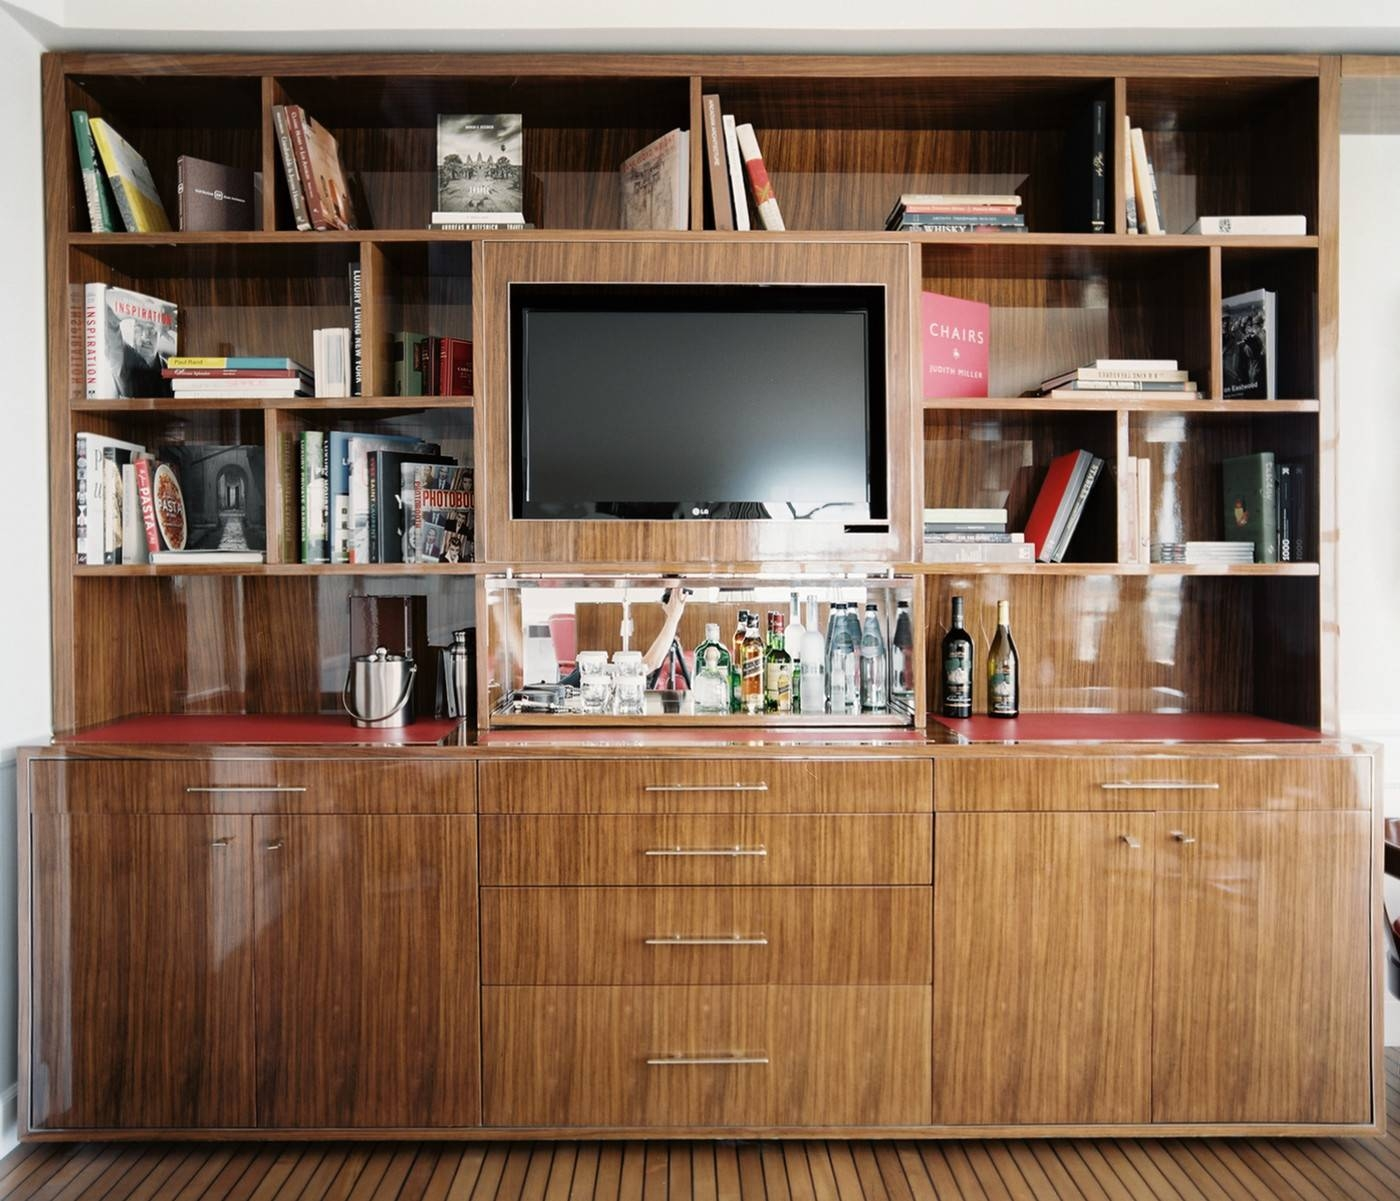 Bookcase Tv Stand Photos, Design, Ideas, Remodel, And Decor – Lonny Inside Bookshelf And Tv Stands (View 9 of 15)